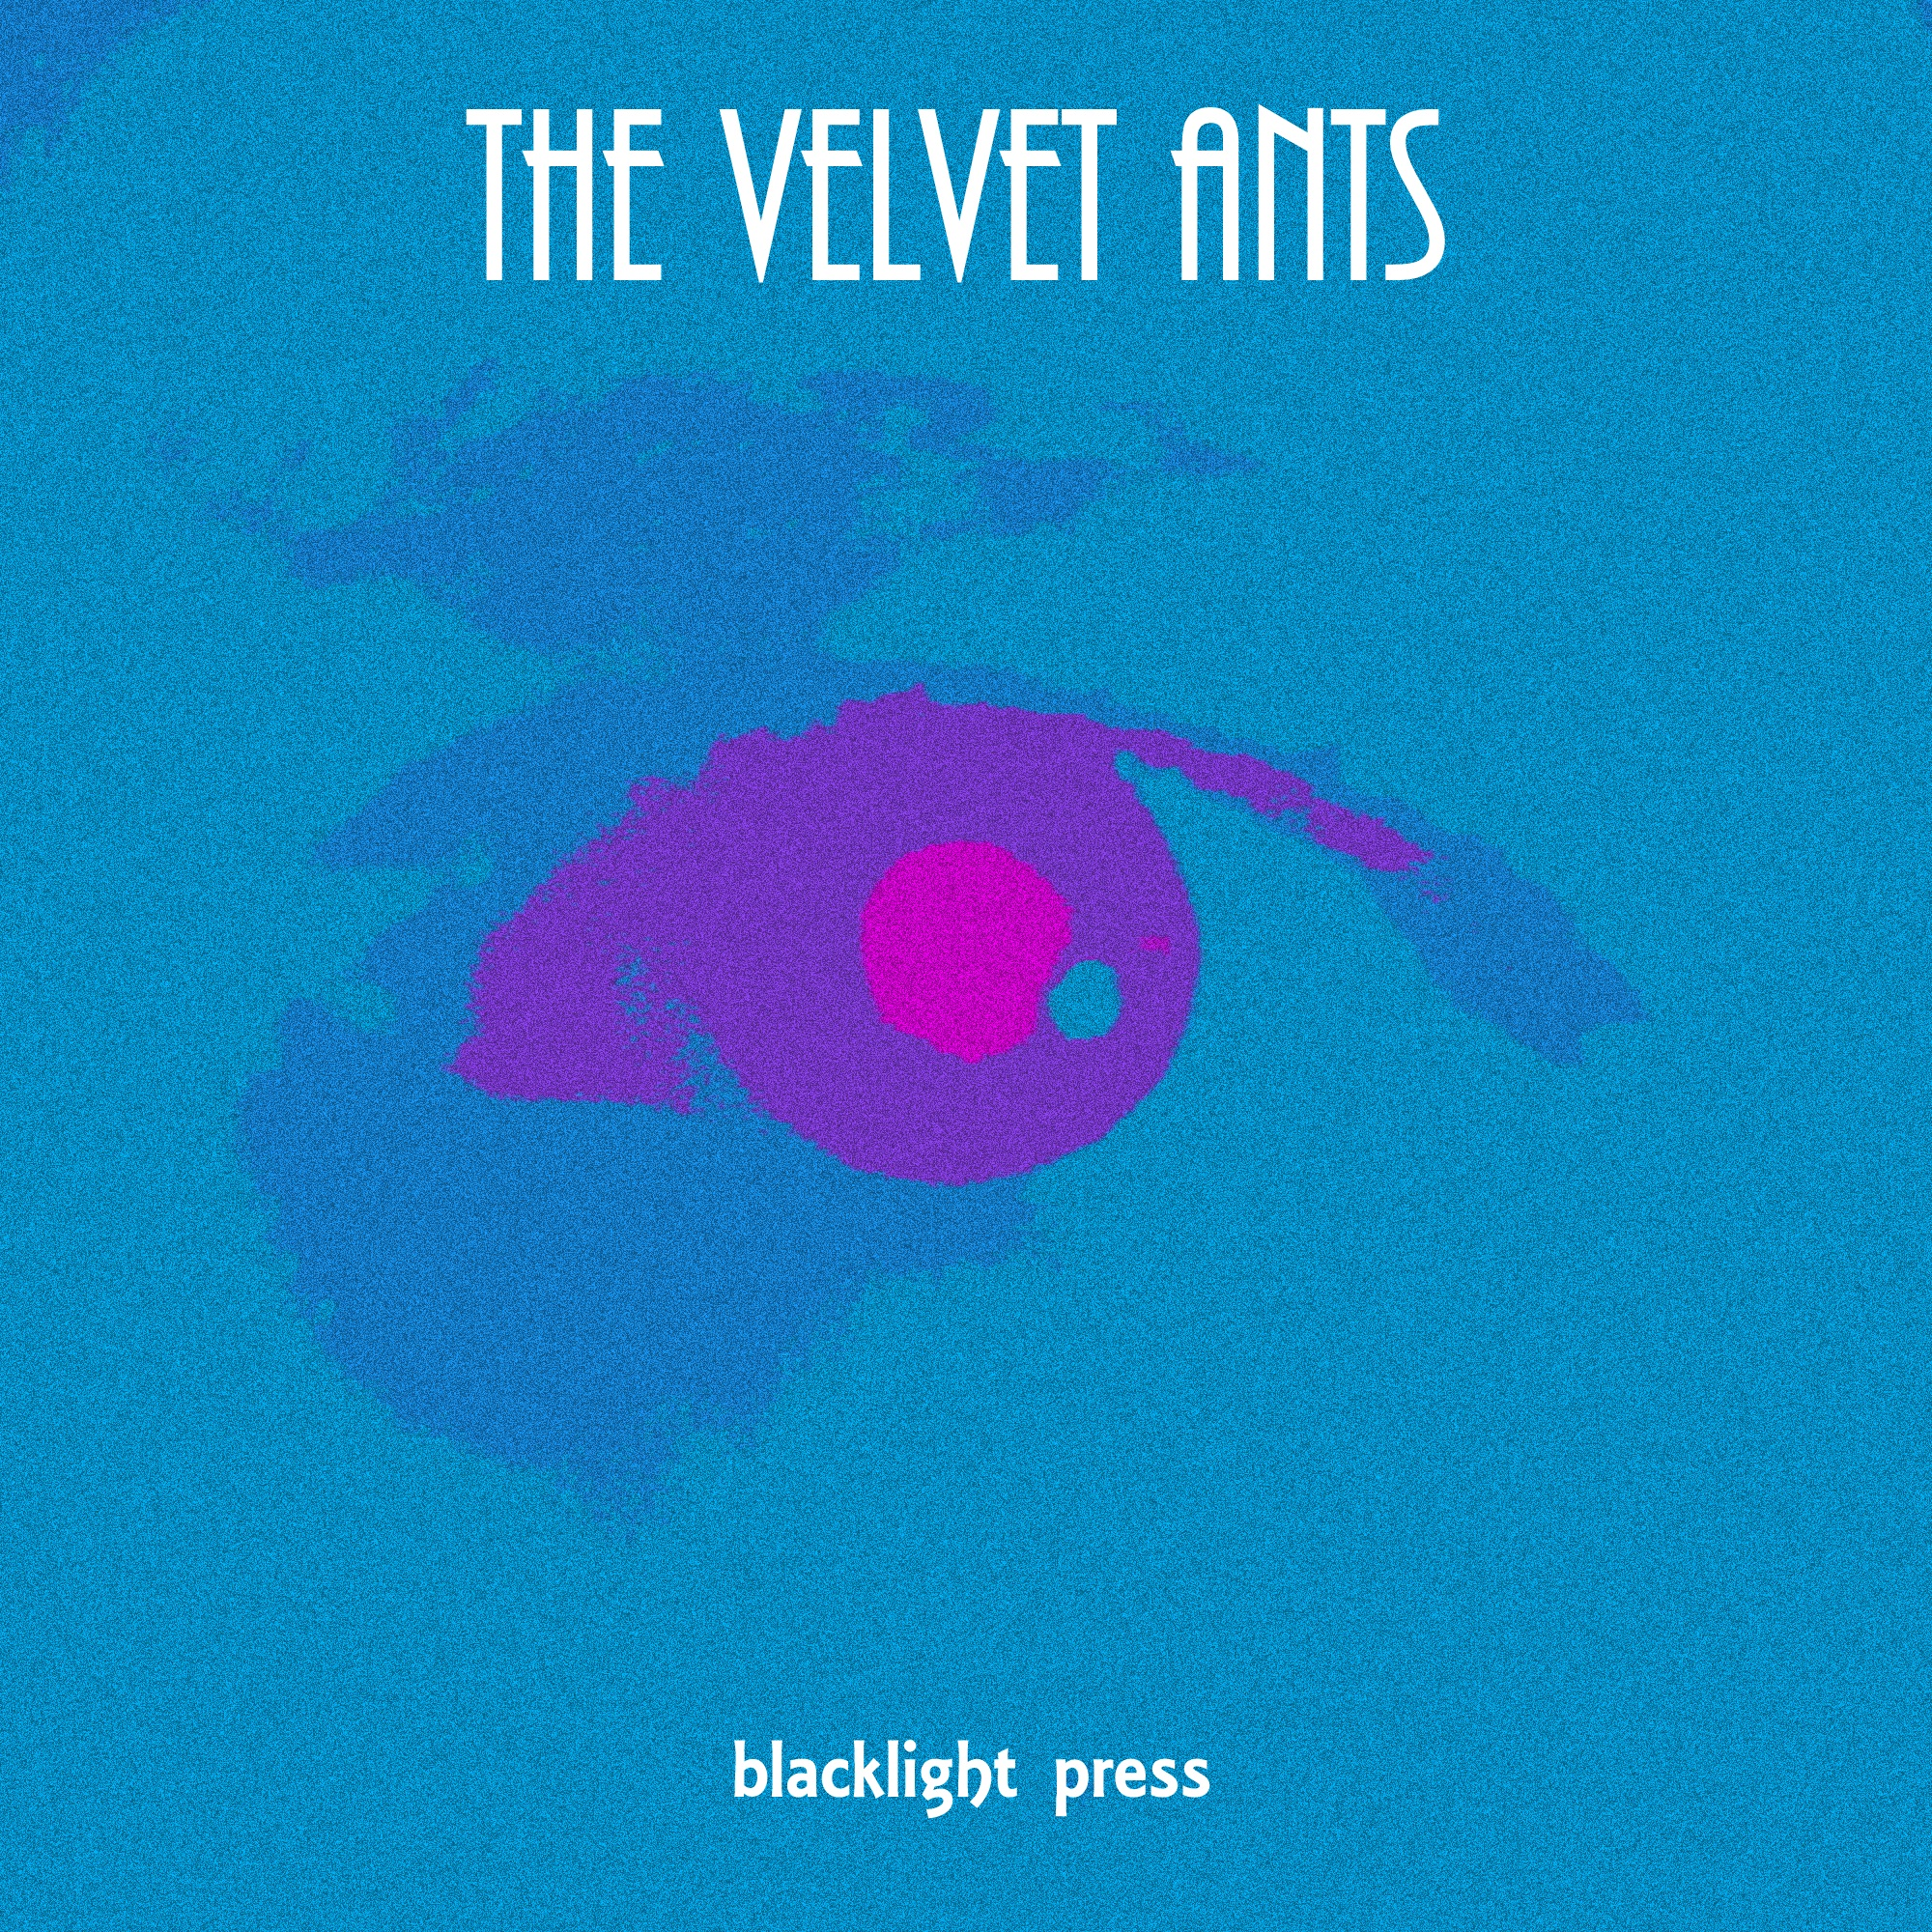 The Velvet Ants - Blacklight Press